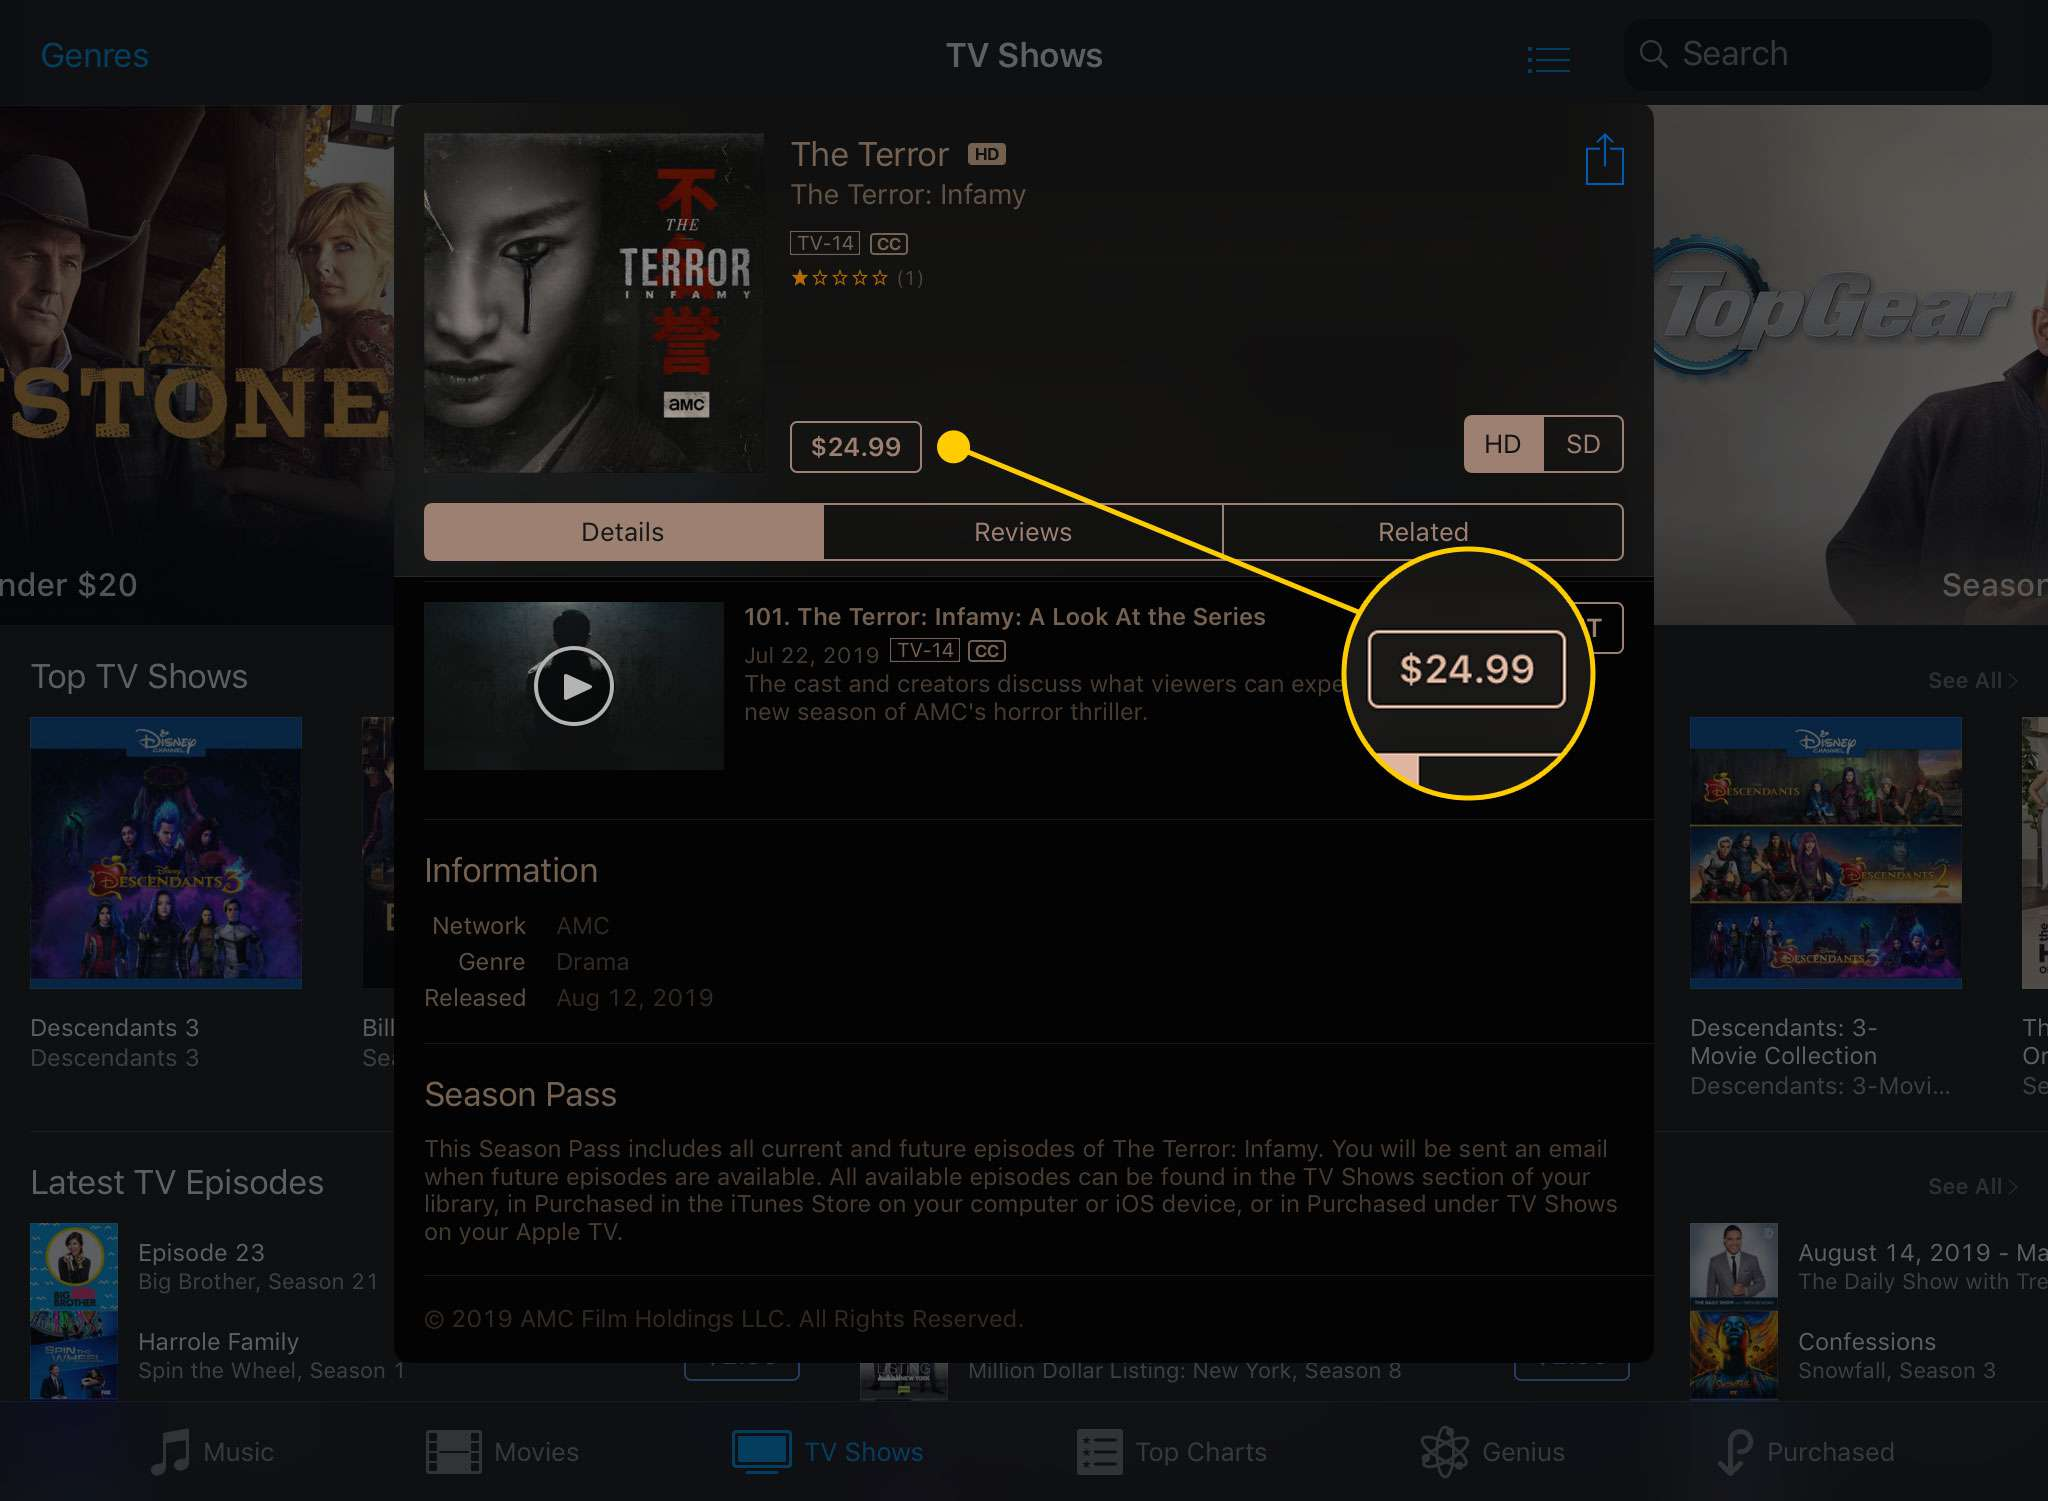 A TV show's page open in the iTunes Store app on an iPad with the price button highlighted